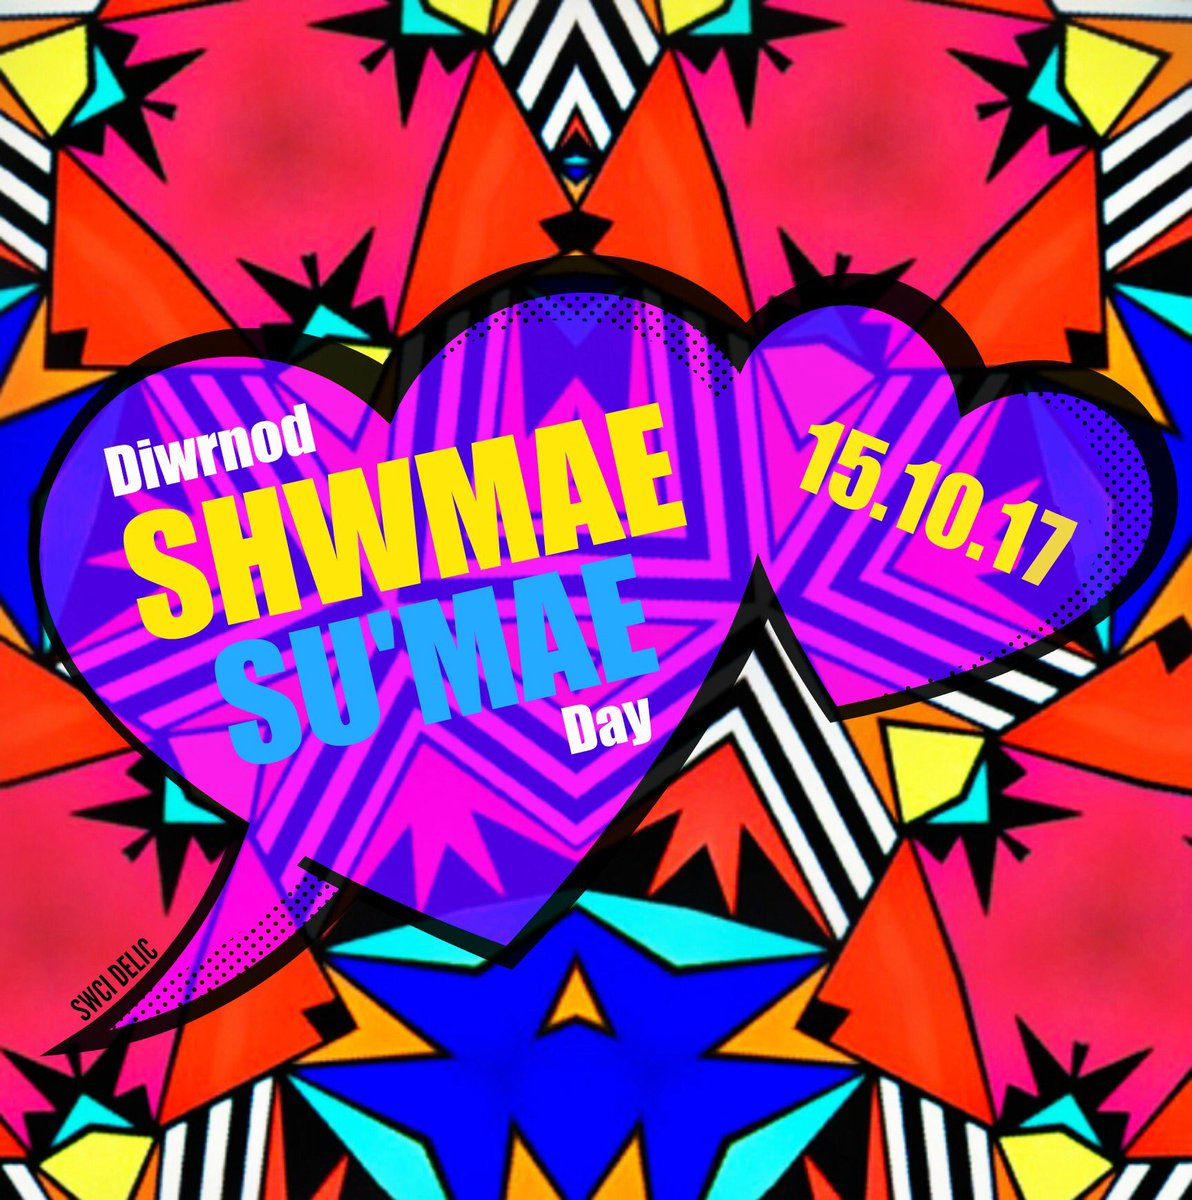 test Twitter Media - Cadwch y dyddiad / Save the Date #ShwmaeSumae 15.10.17 https://t.co/QUEetuAQTX